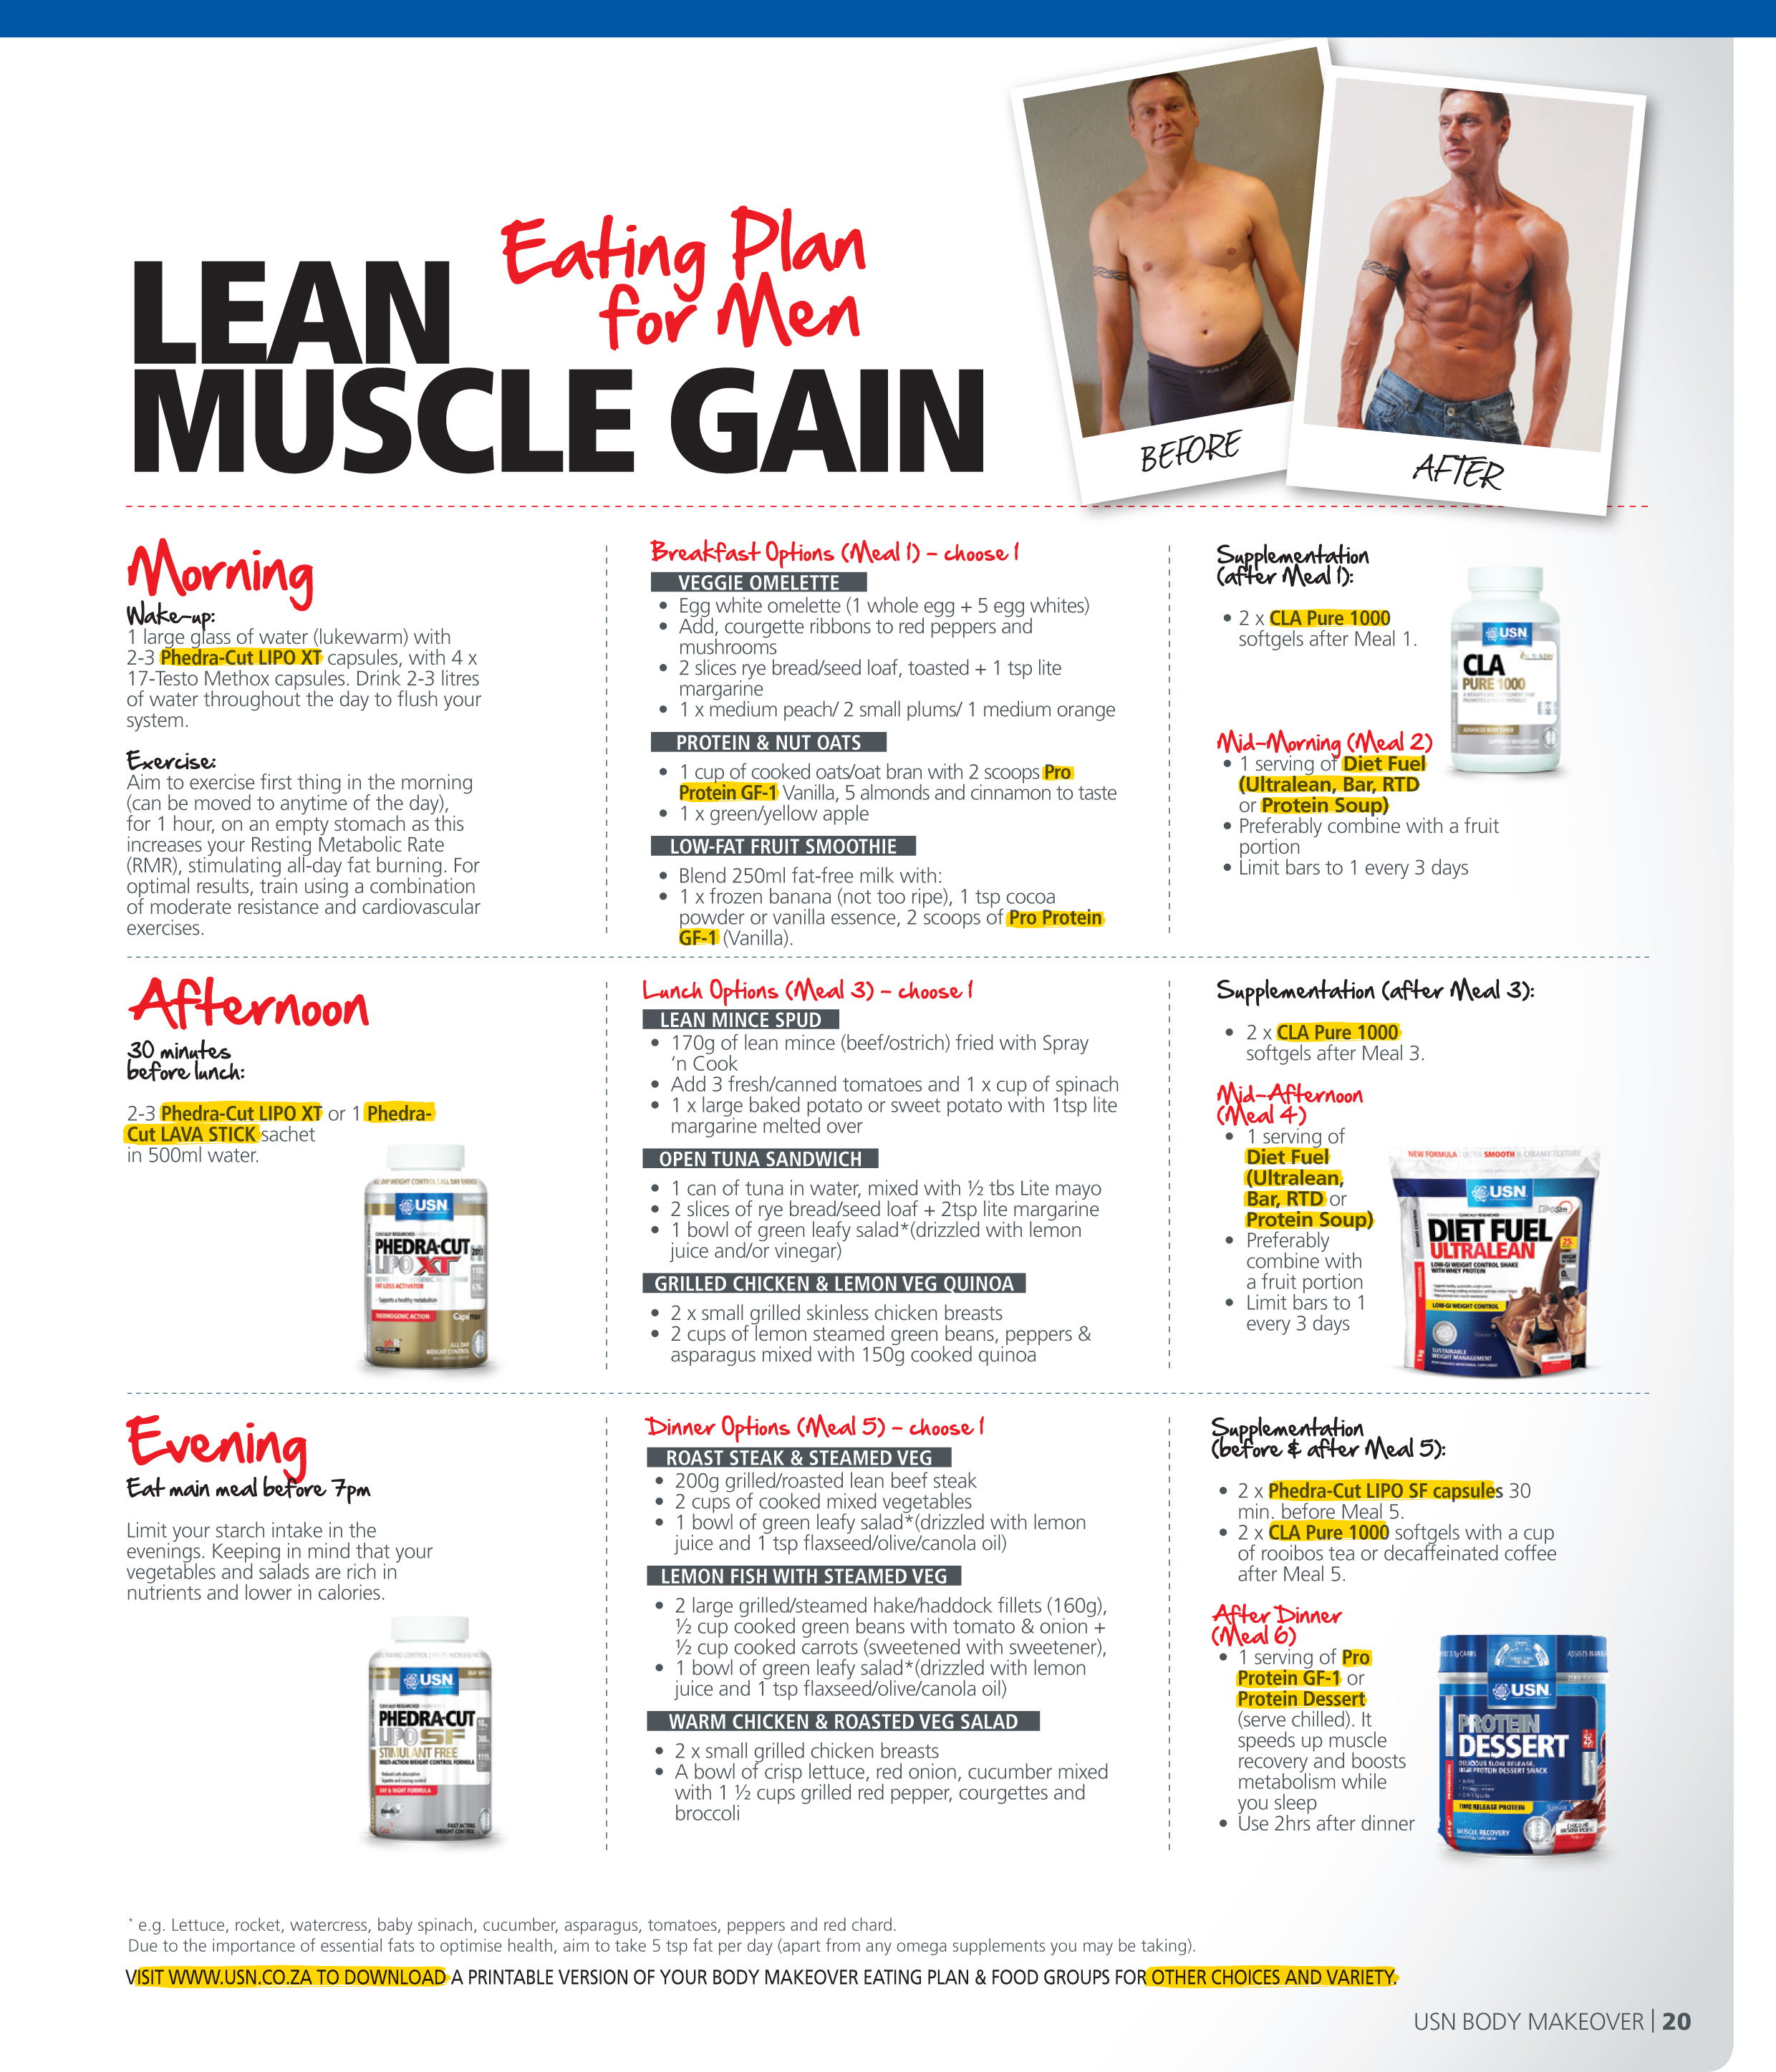 Best Muscle Building Food And Supplement Plan